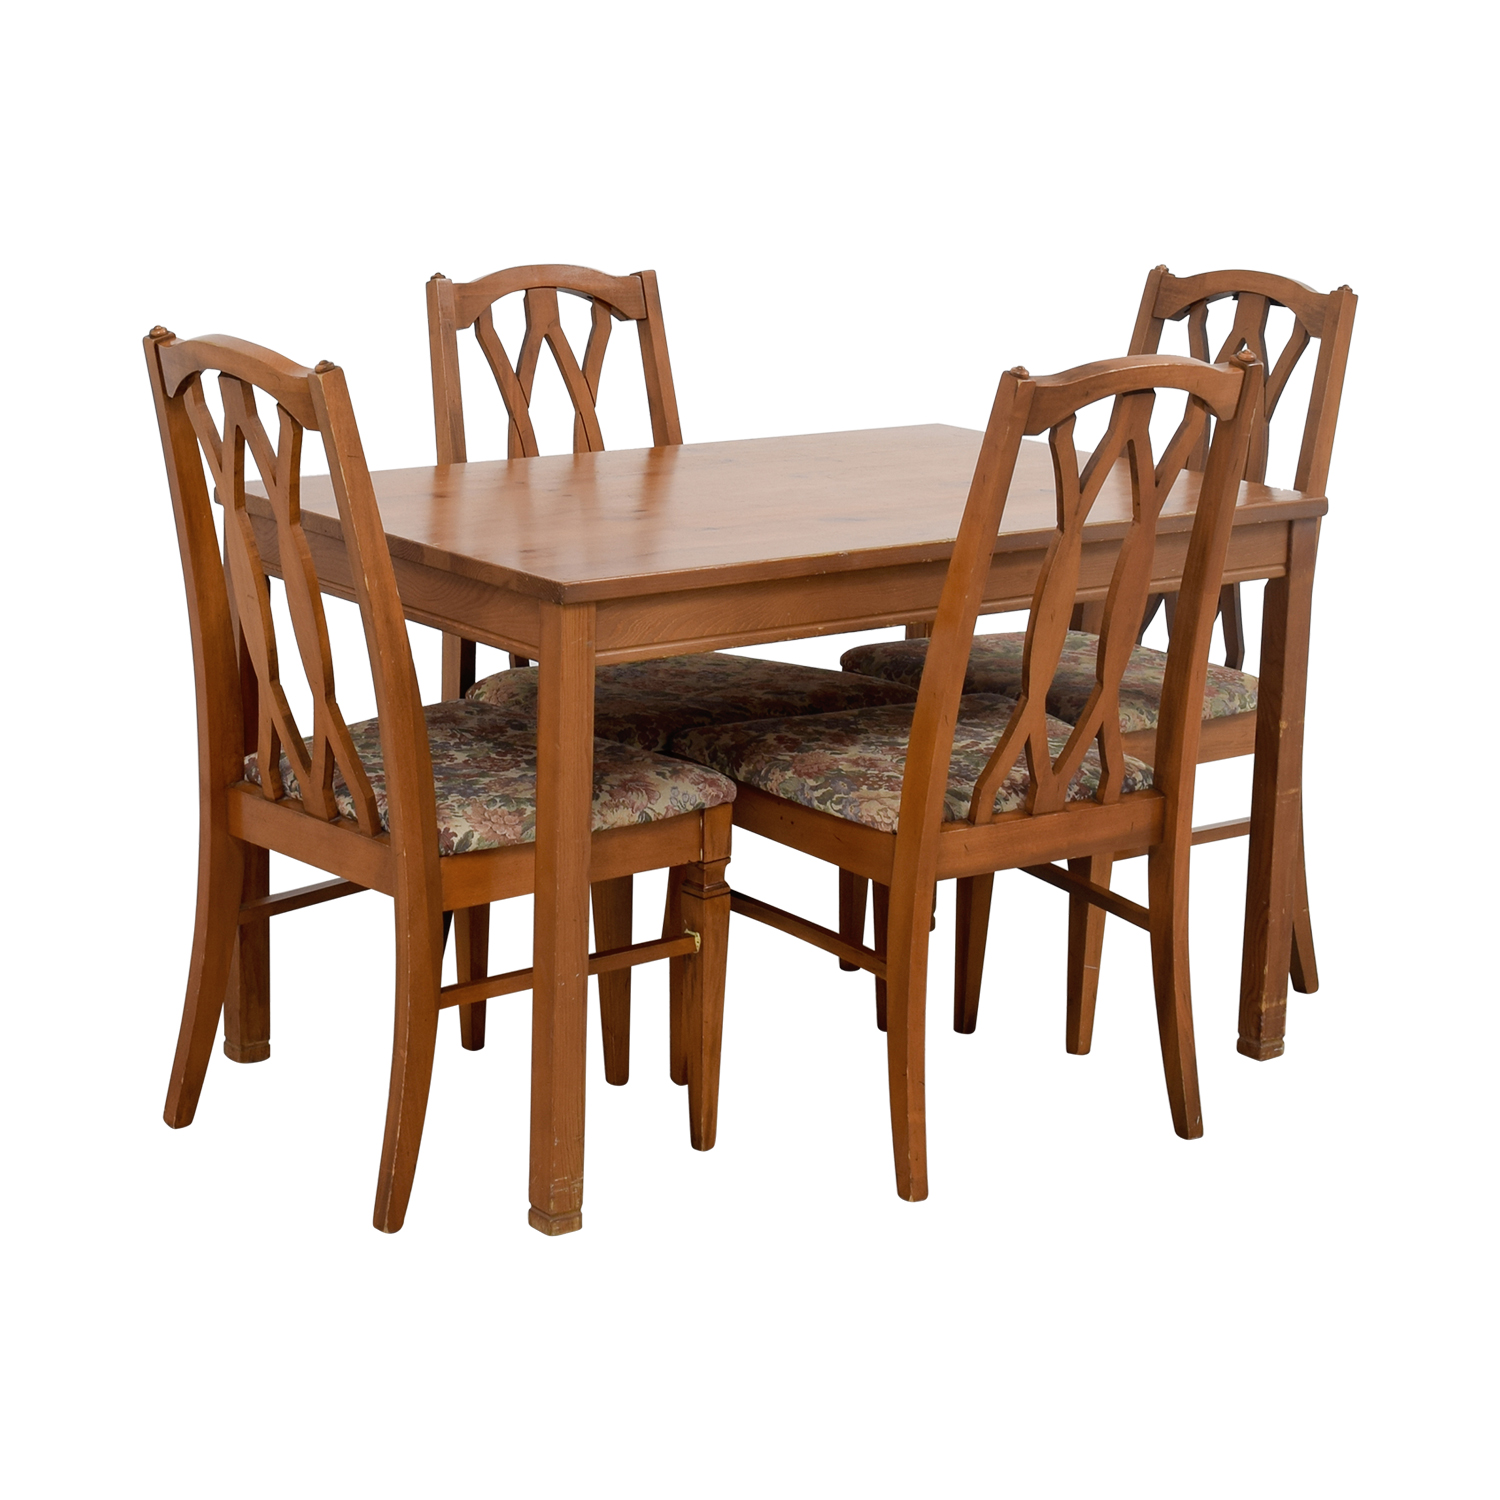 Off wood kitchen table and floral upholstered chairs